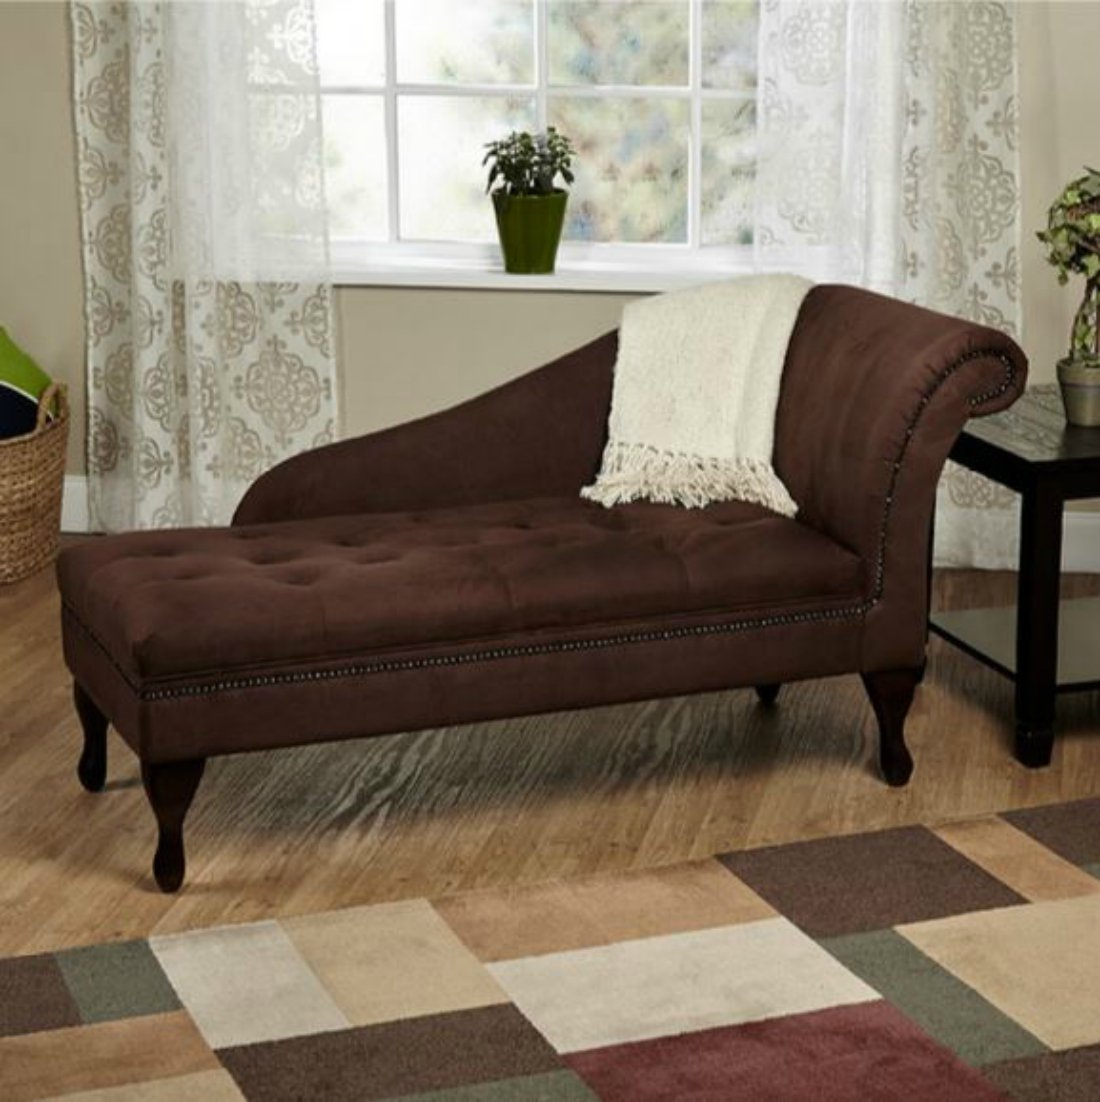 Beautiful Amazon.com: Modern Storage Chaise Lounge Chair   This Tufted Cushions Is  Microfiber Upholstered   Perfect For Your Living Room, Bedroom, Or Any  Space In ...